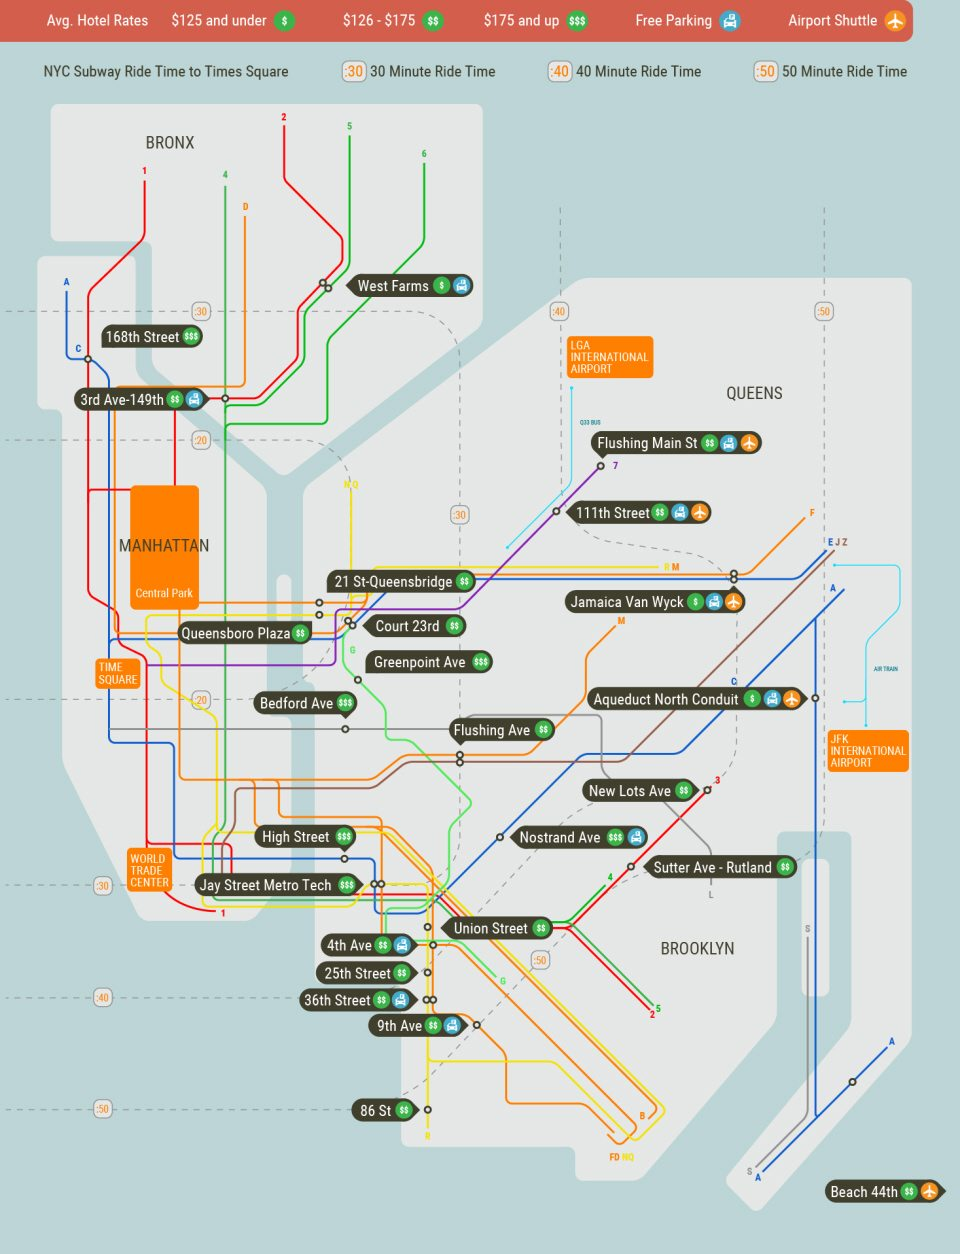 Subway Map Of The Bronx.Map Of Brooklyn Bronx Queens Hotels Near Nyc Subway